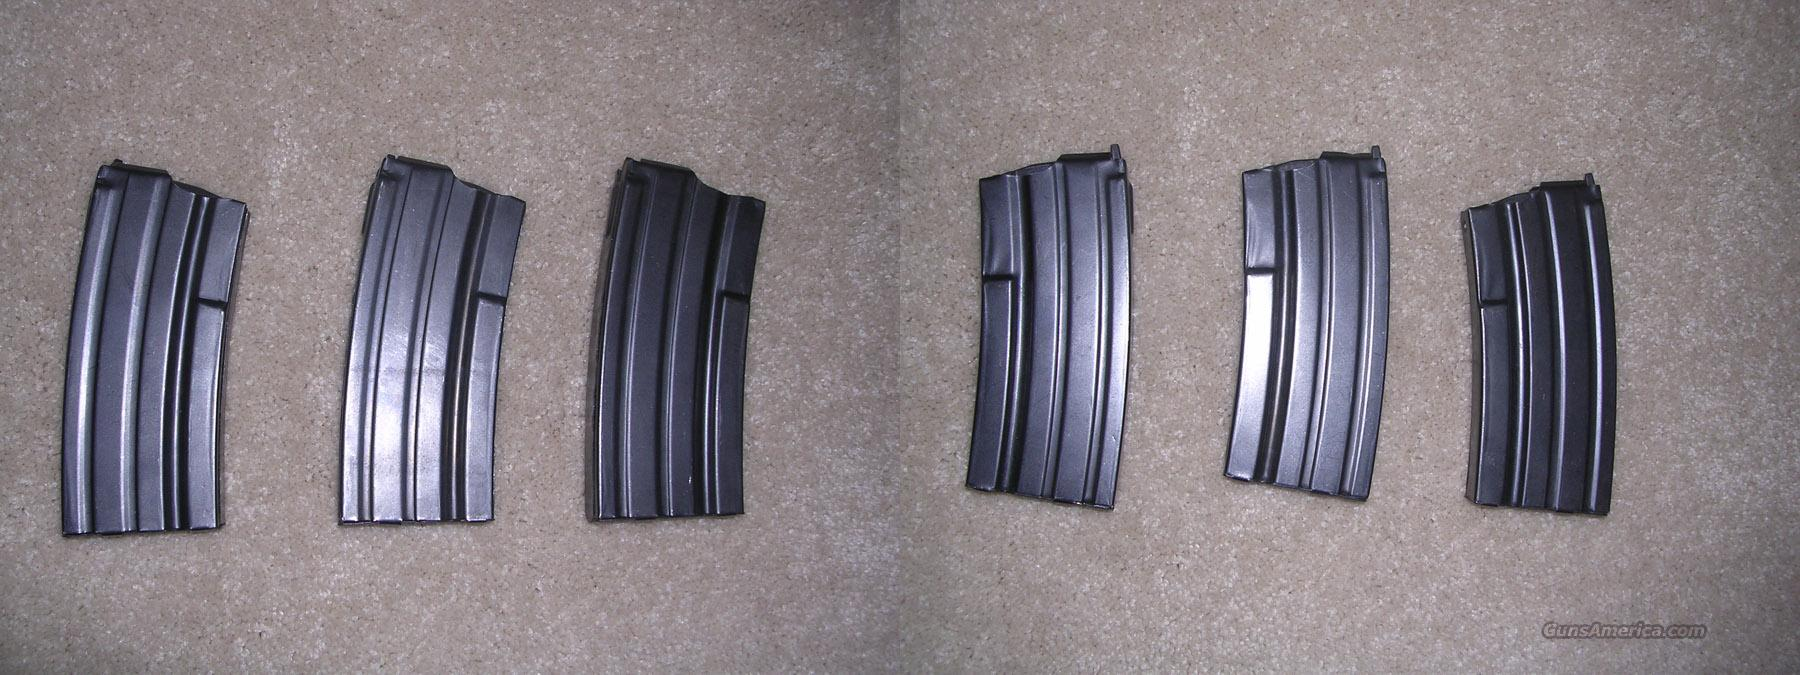 mini 14 20 Round Magazine  Non-Guns > Magazines & Clips > Rifle Magazines > Mini 14